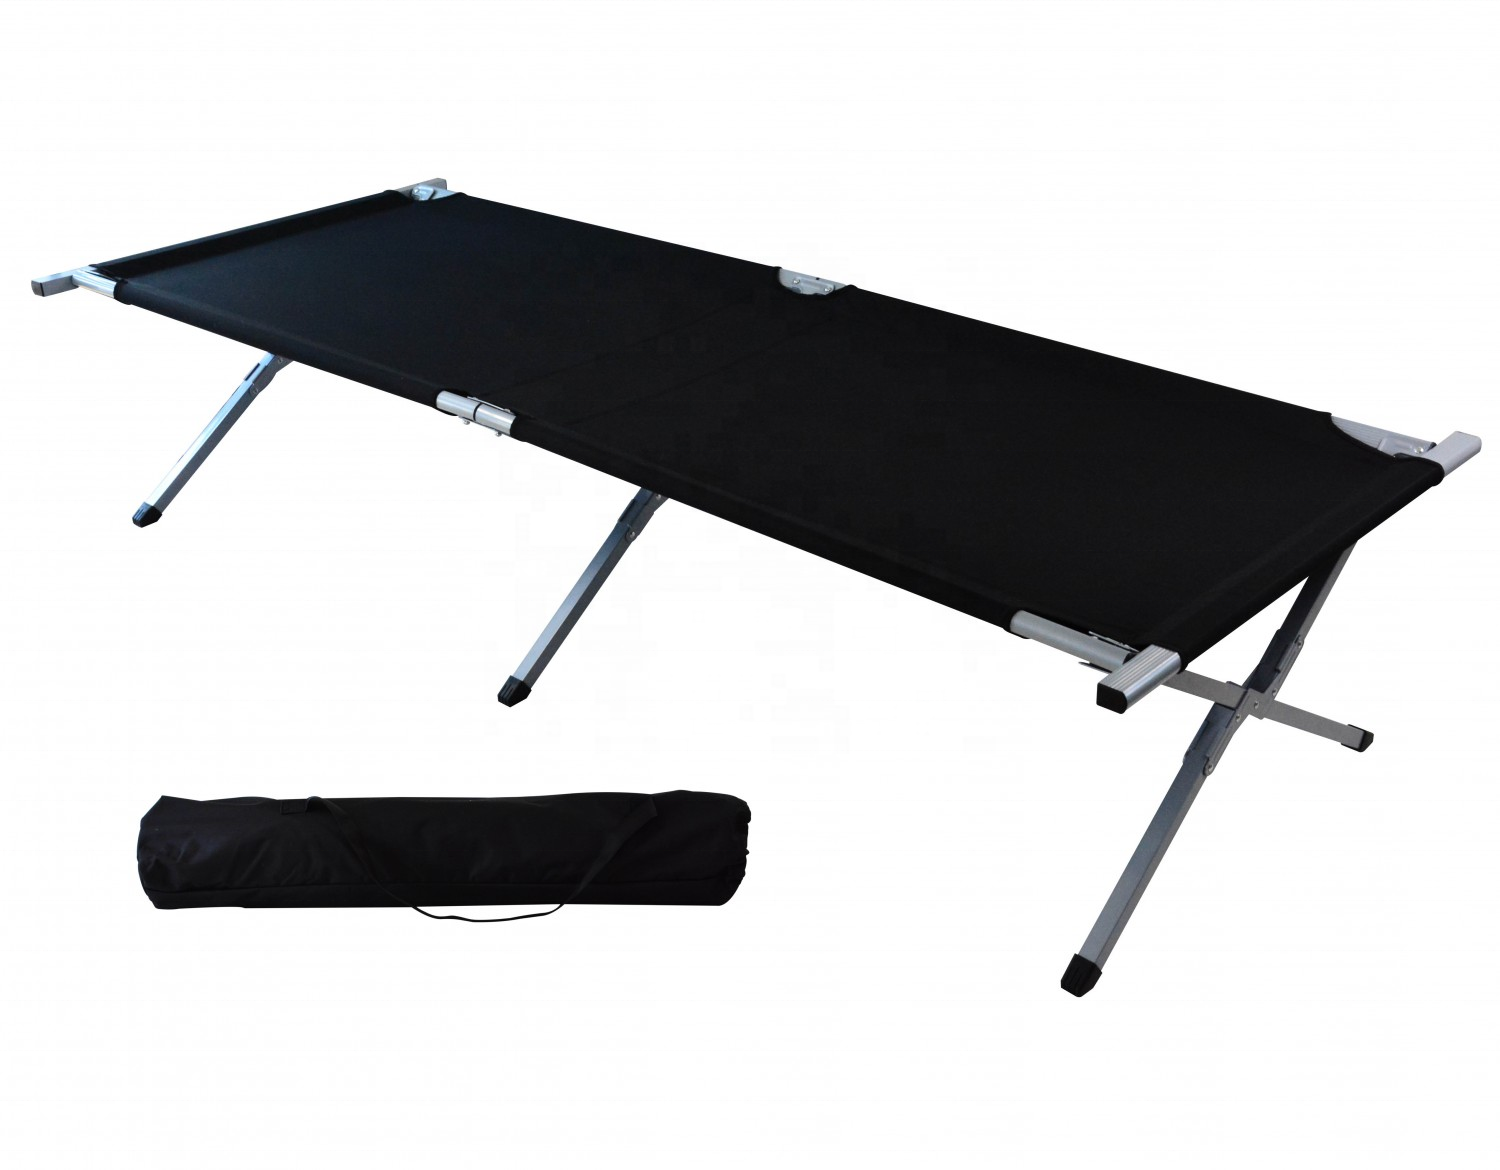 Foldable Military Army Single Metal Outdoor Cot Folding Camping <strong>bed</strong>